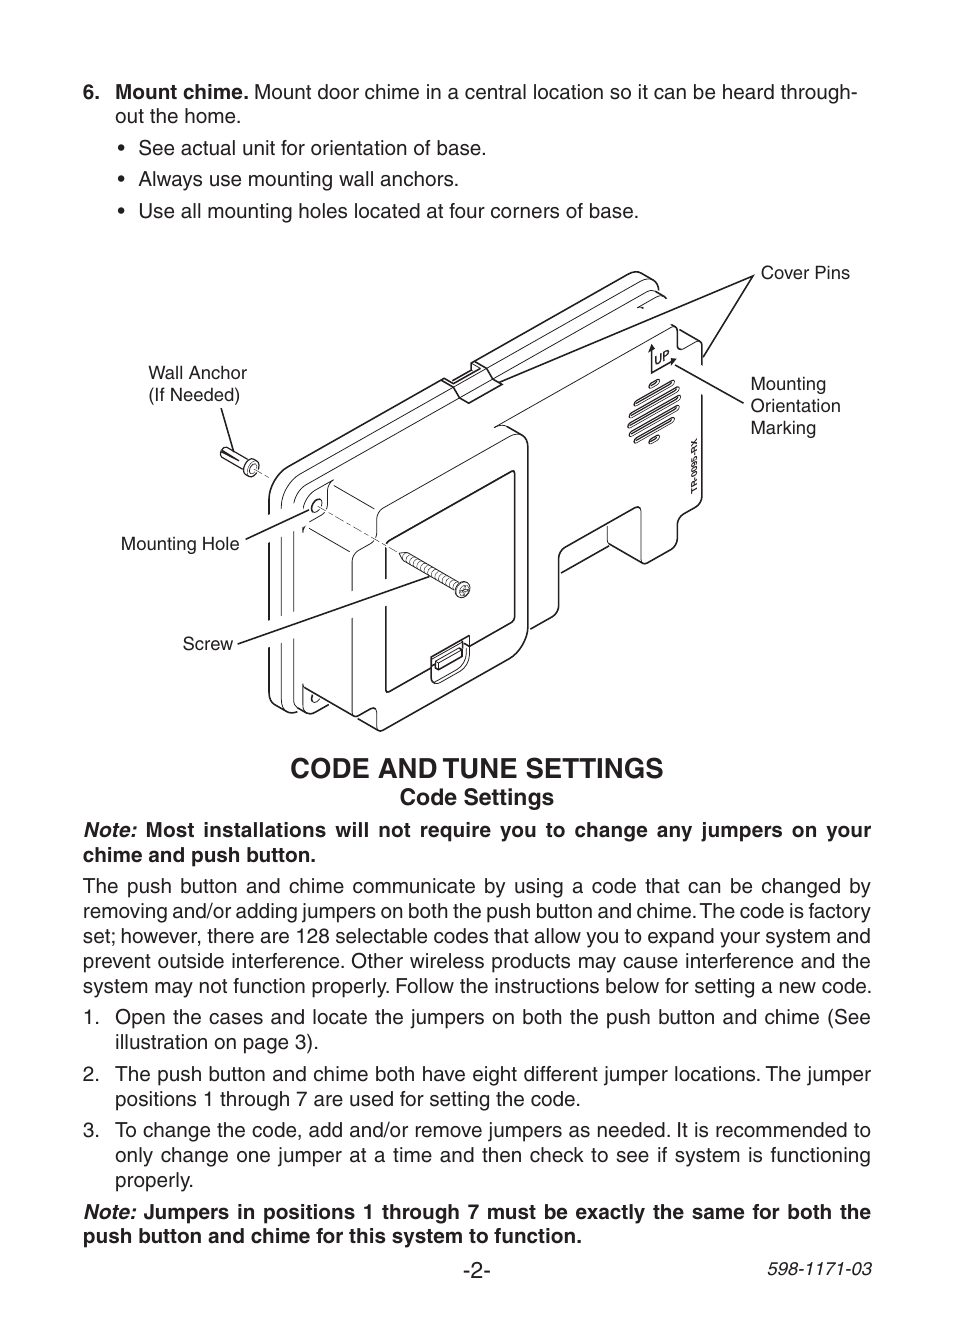 Code And Tune Settings Heath Zenith Wireless Chime Tr